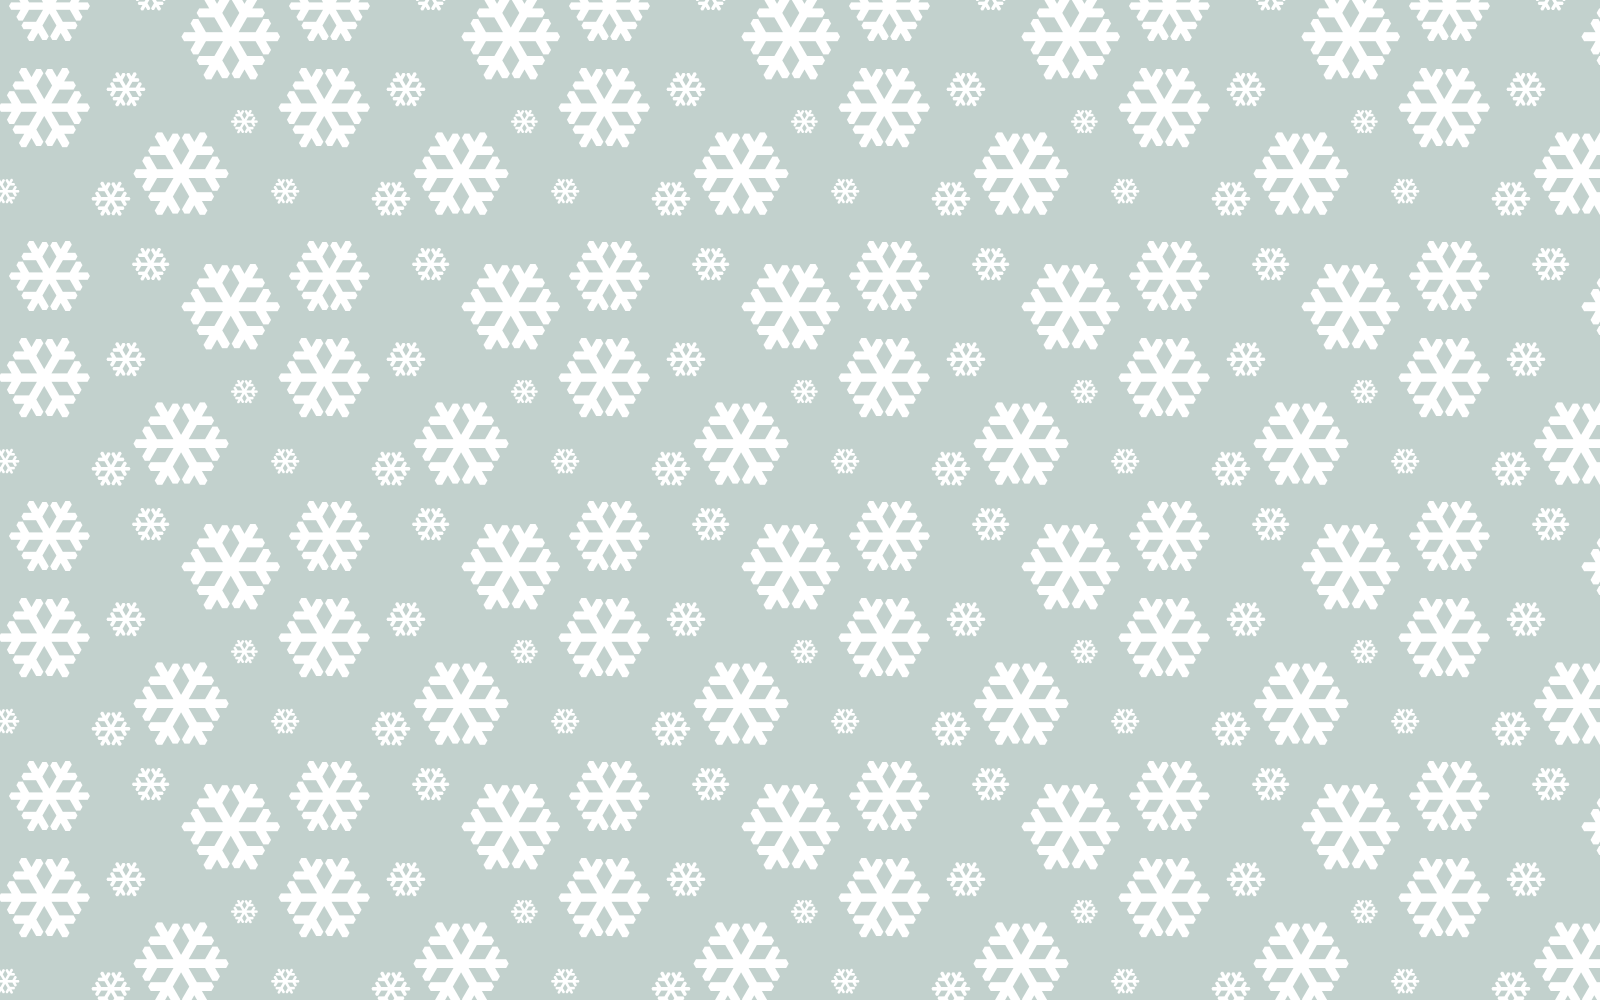 39 Best Free Cute Christmas Pattern Wallpapers - WallpaperAccess